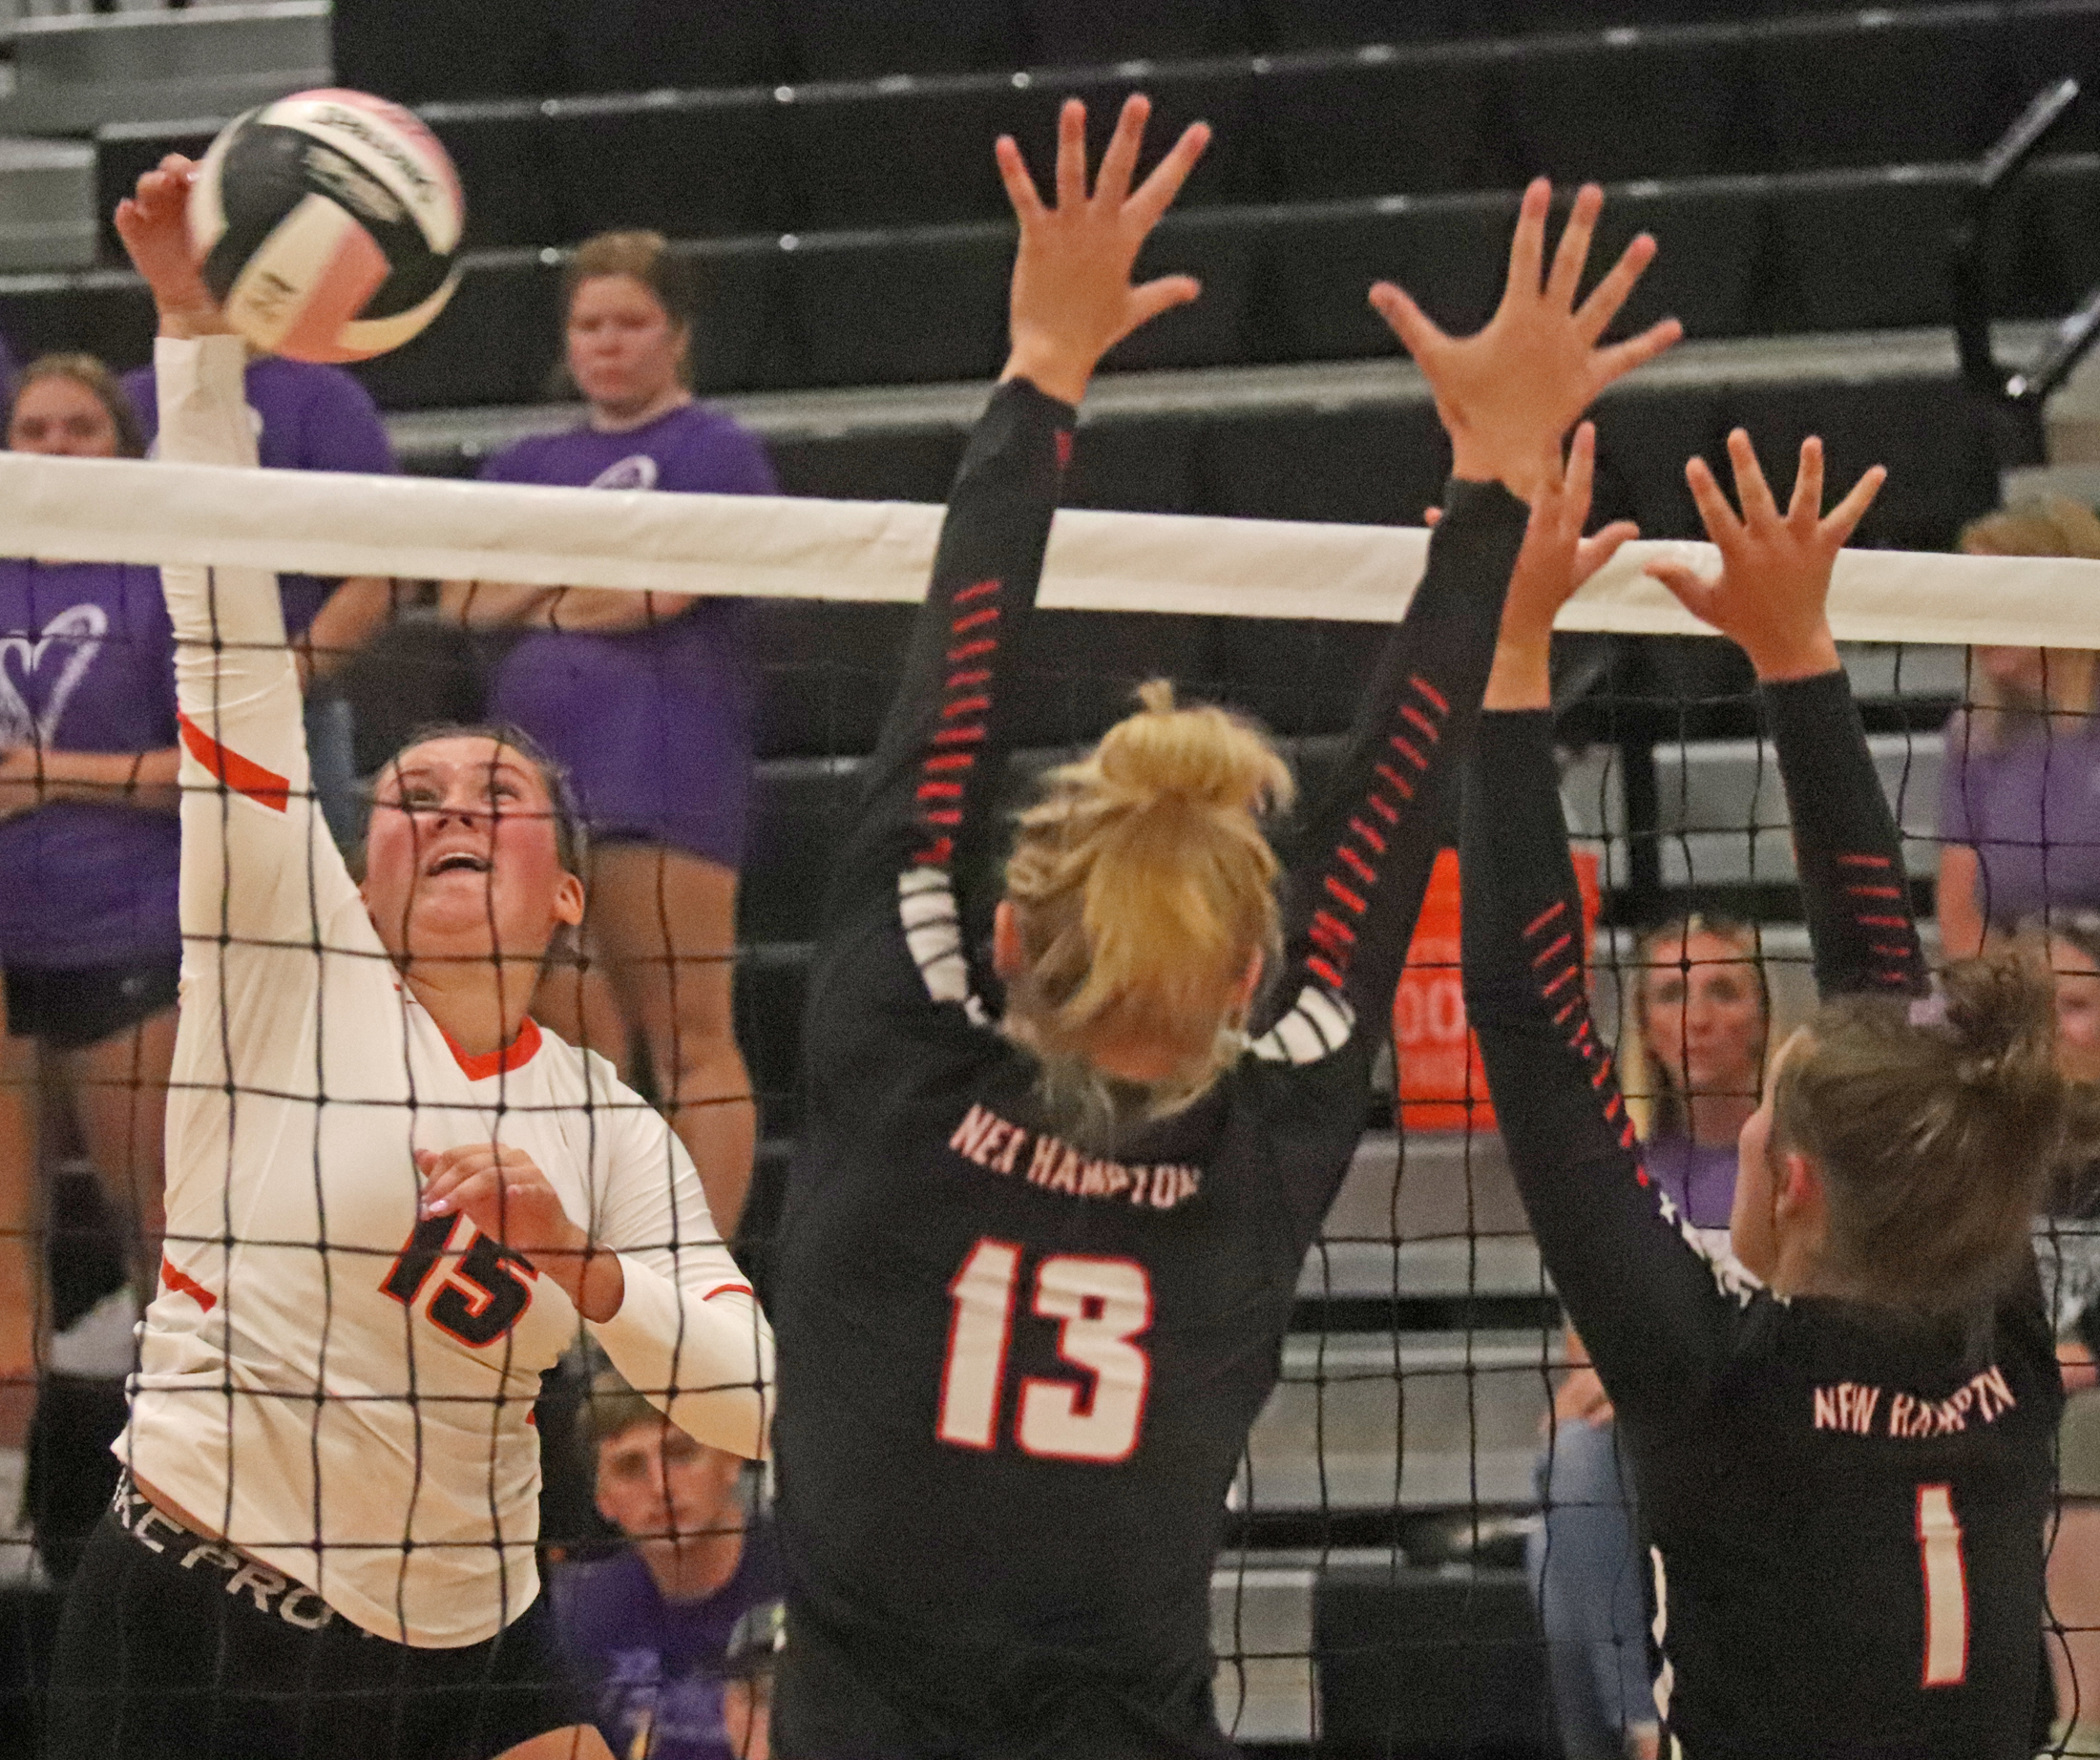 Comets fall to Chickasaws in NEIC opener, go 1-1 while hosting triangular